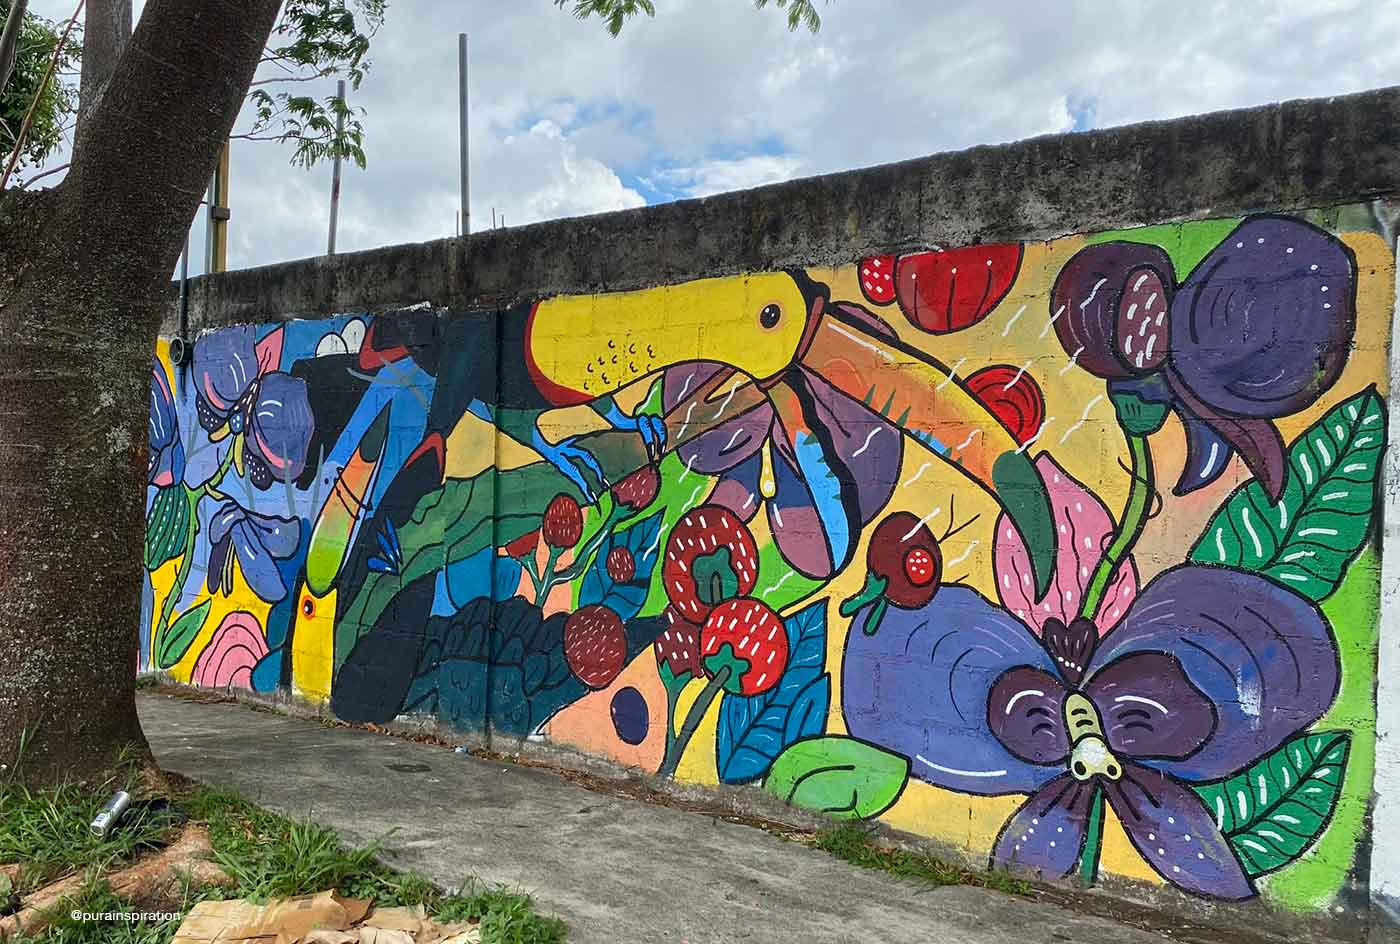 mural with toucan flying made by ryliuk